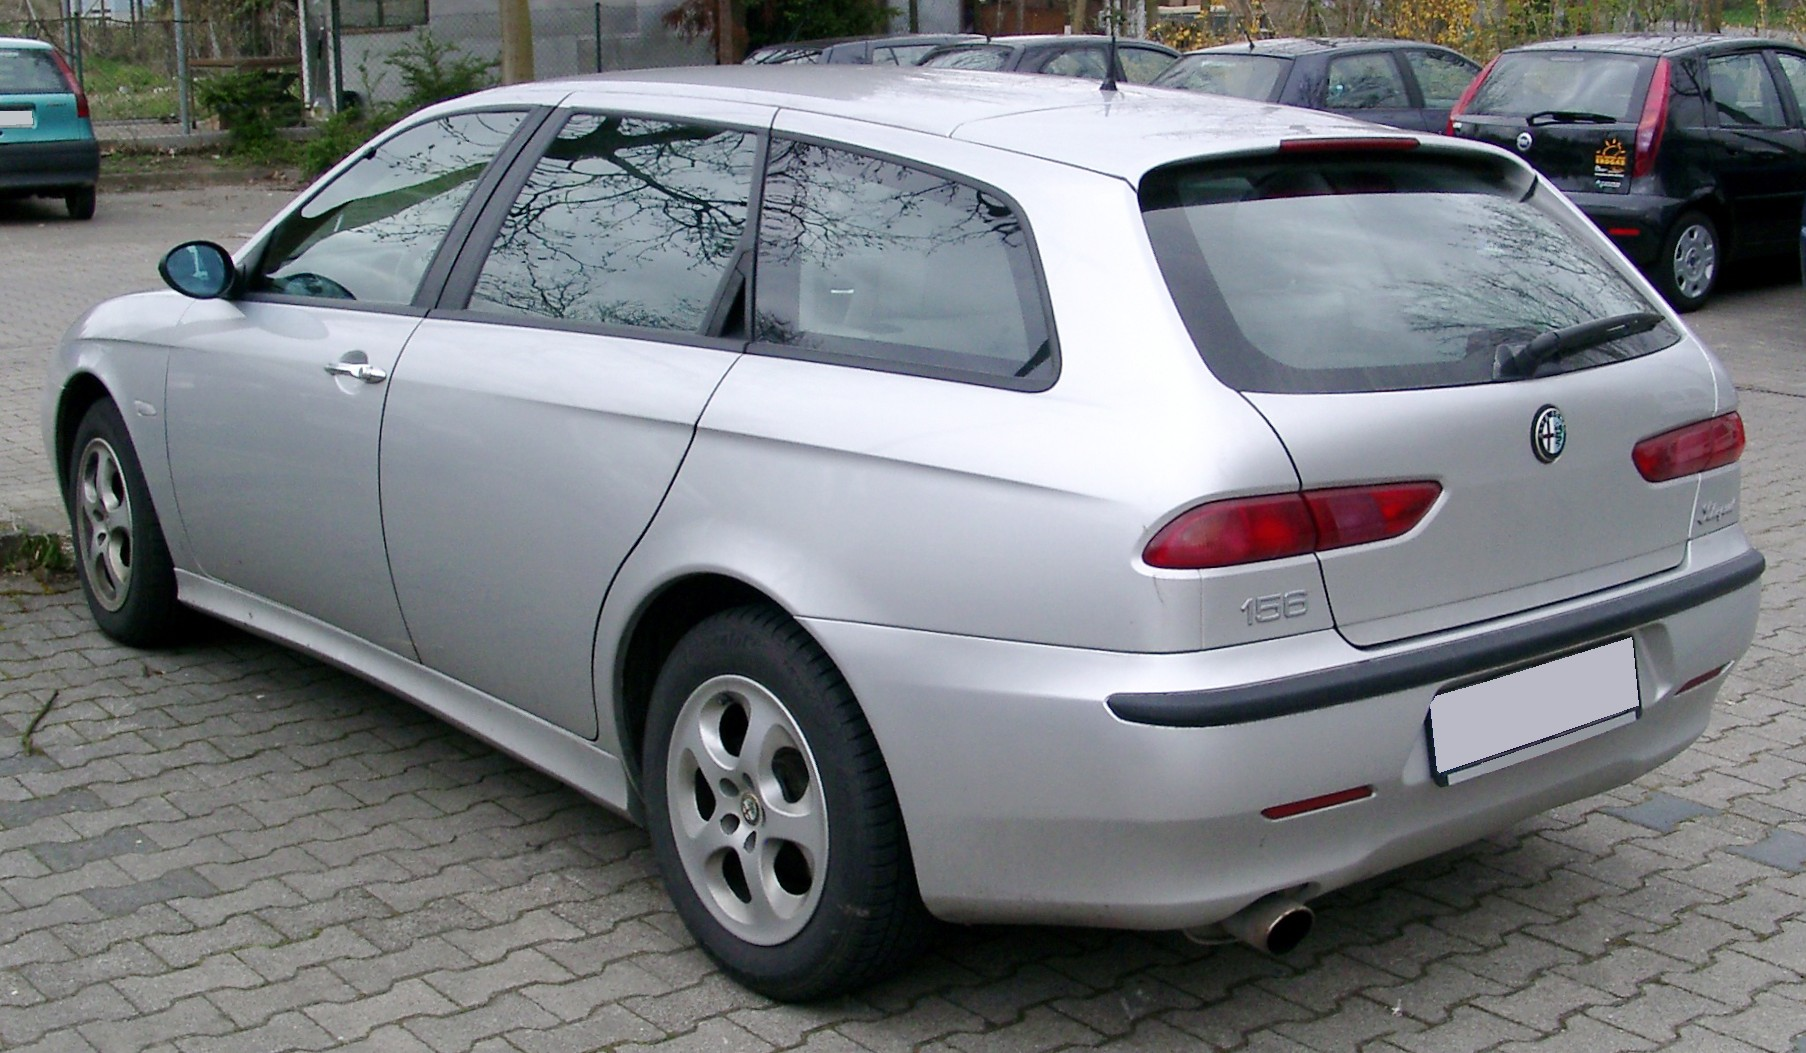 File:Alfa 156 Sportwagon rear 20080403.jpg